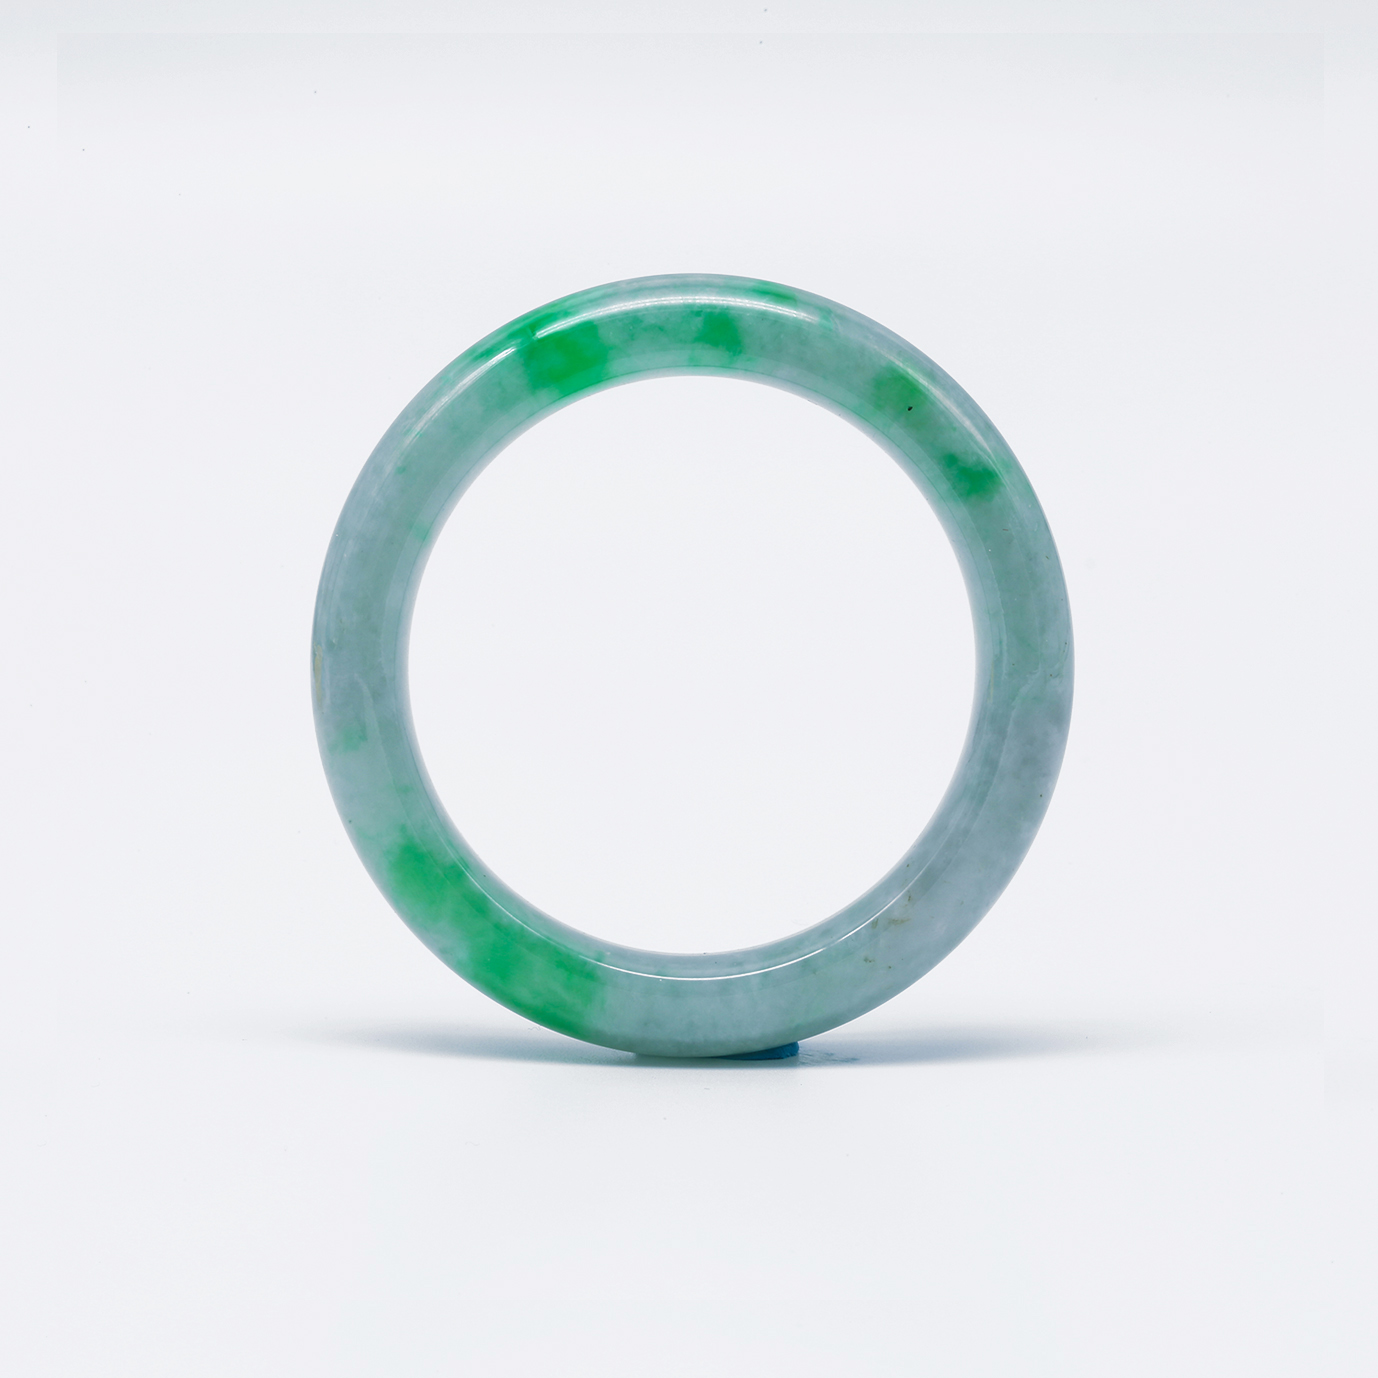 Splashes of Vibrant Green Jadeite Bangle